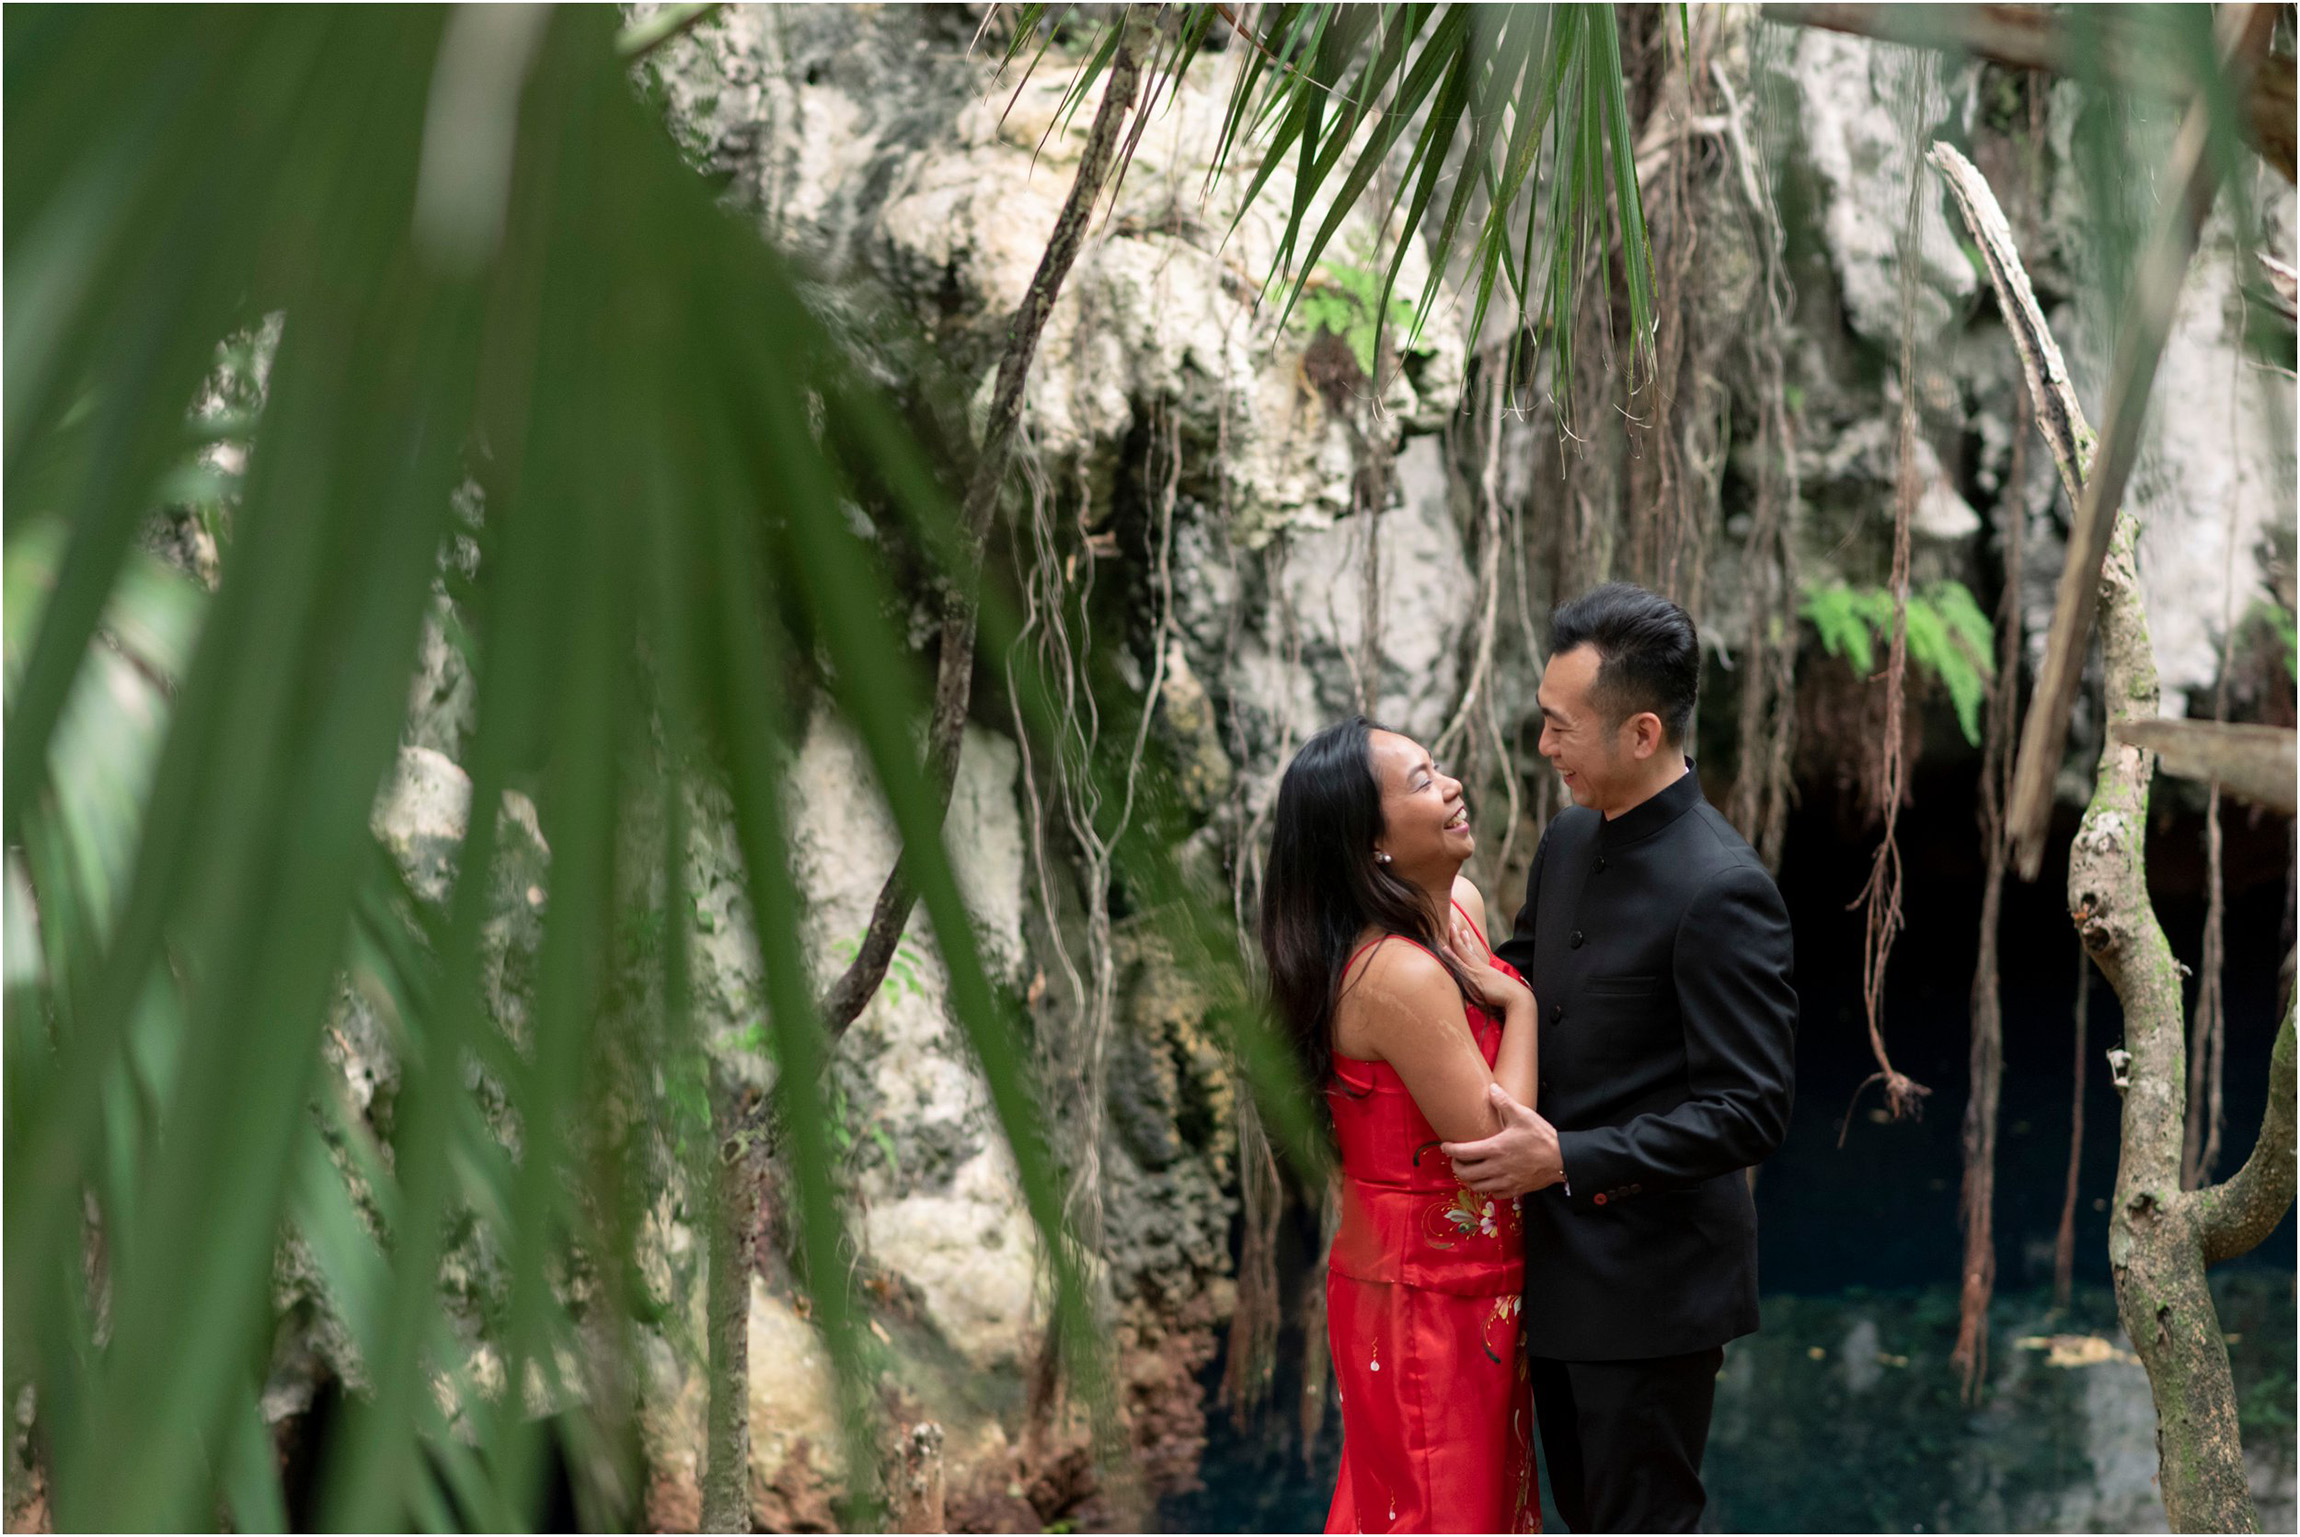 ©FianderFoto_Bermuda Engagement Photographer_Tom Moores Jungle_Owen_Chanson_003.jpg